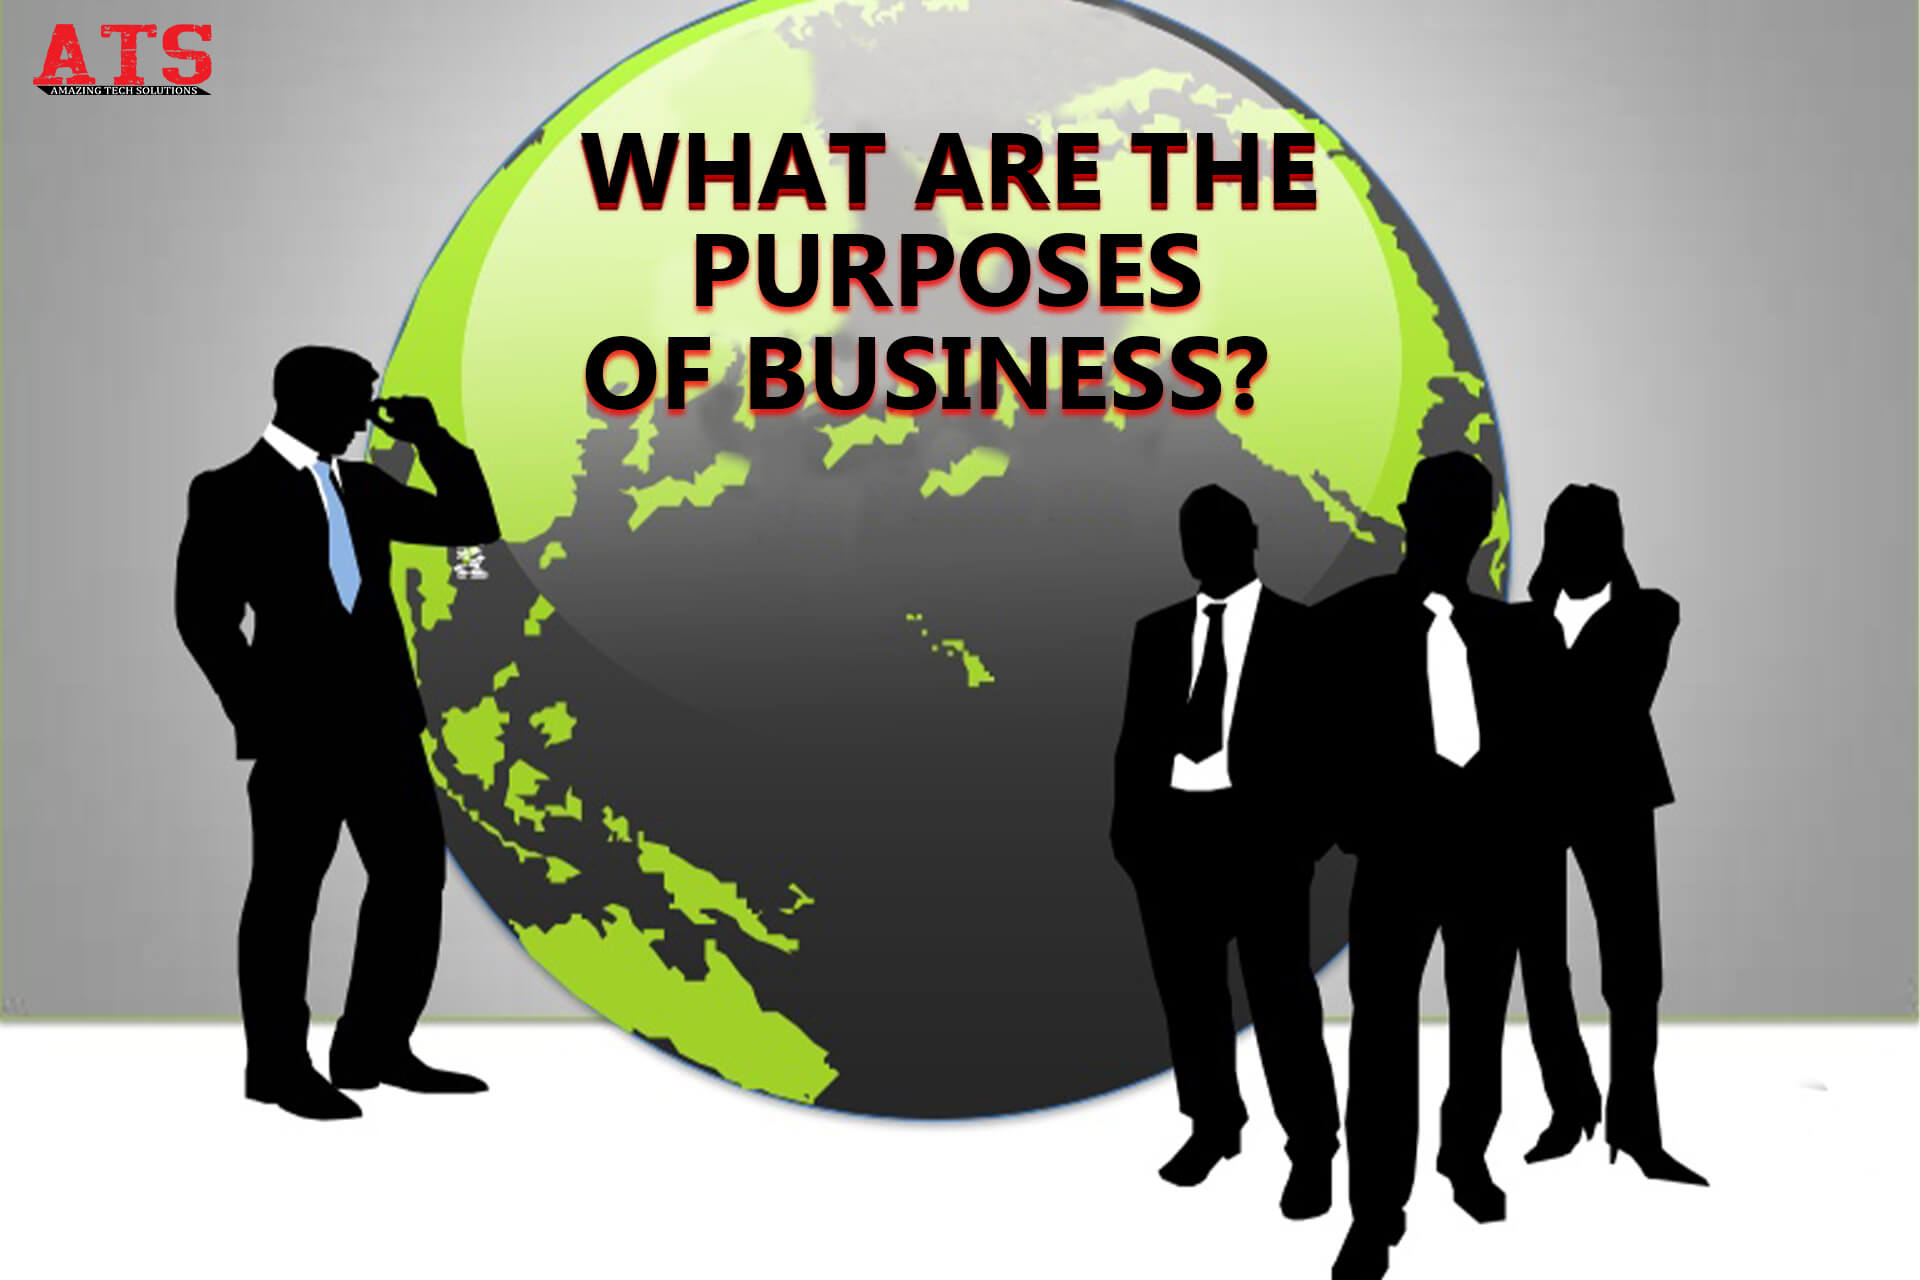 What are the purposes of business